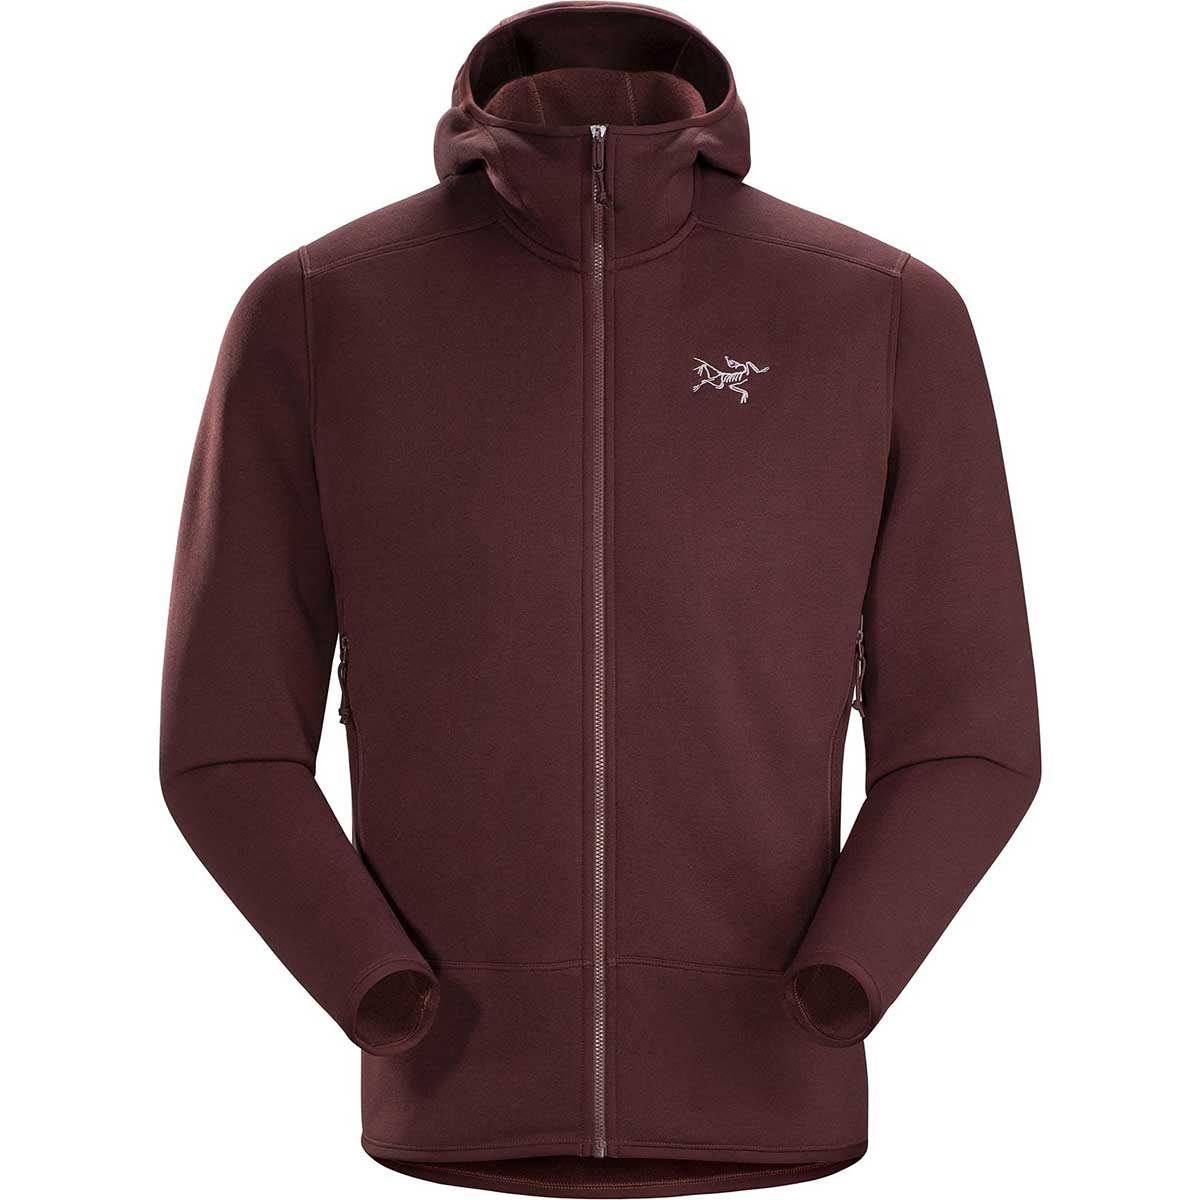 Arcteryx men's Kyanite Hoody in Flux front view